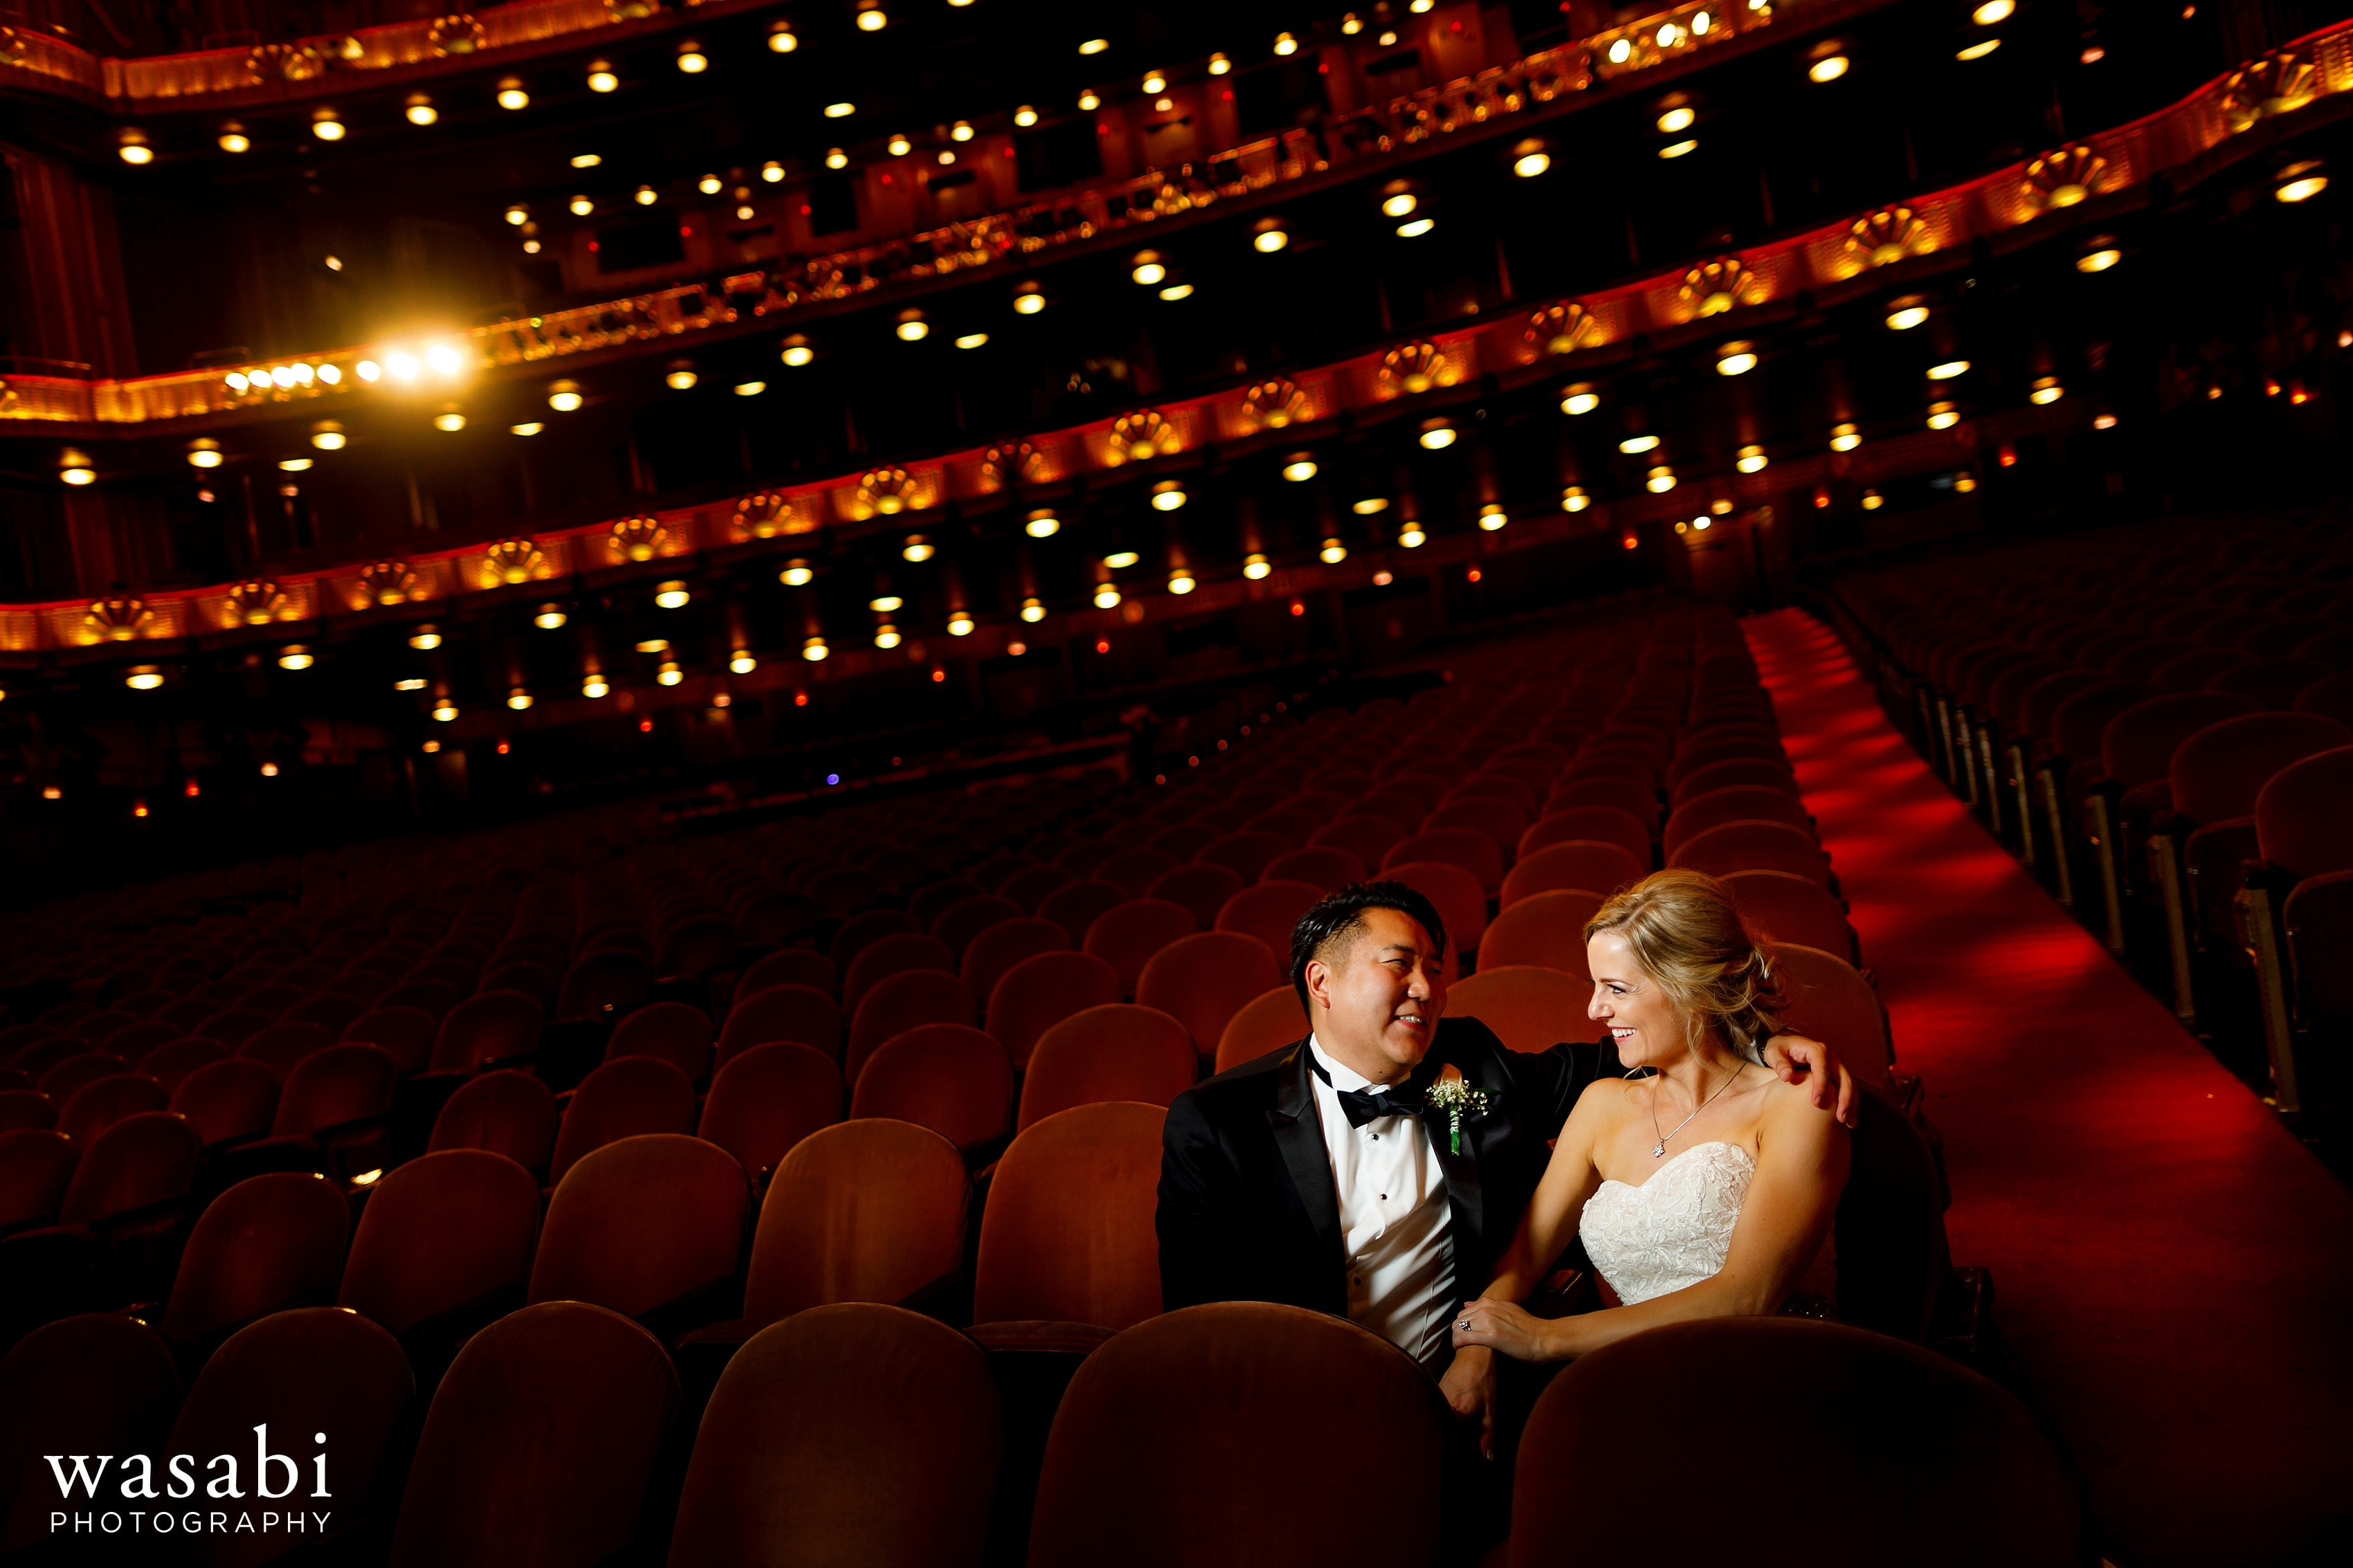 Bride and groom sit in chairs inside the theatre of the Civic Opera Building in downtown Chicago